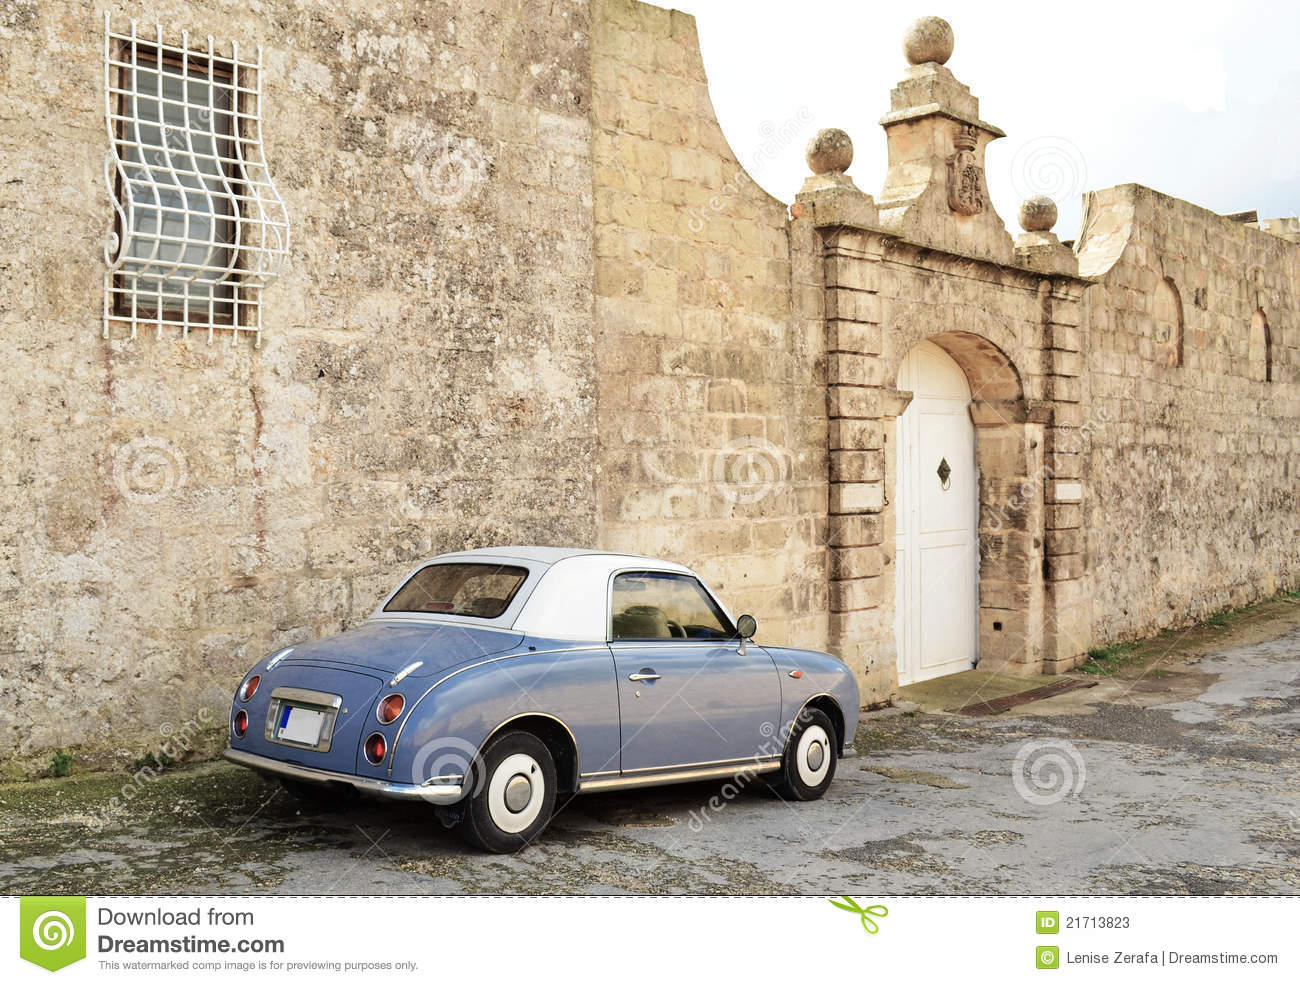 vintage car next to an old house malta stock photos classic luxury hotels alps ballinagh luxury classic houses